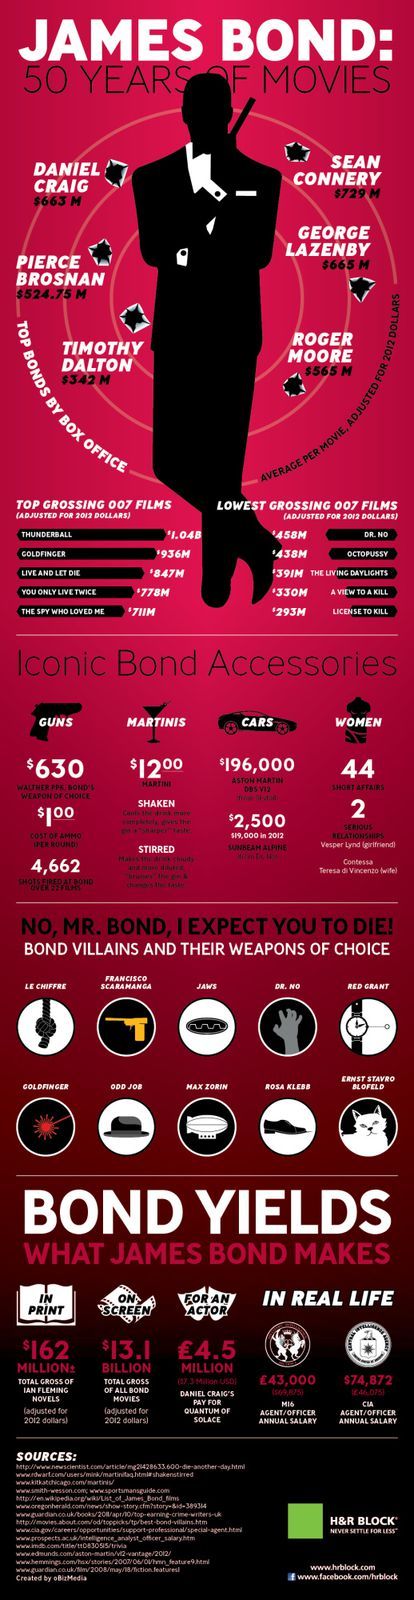 James-Bond-50-Years-of-Movies.jpg